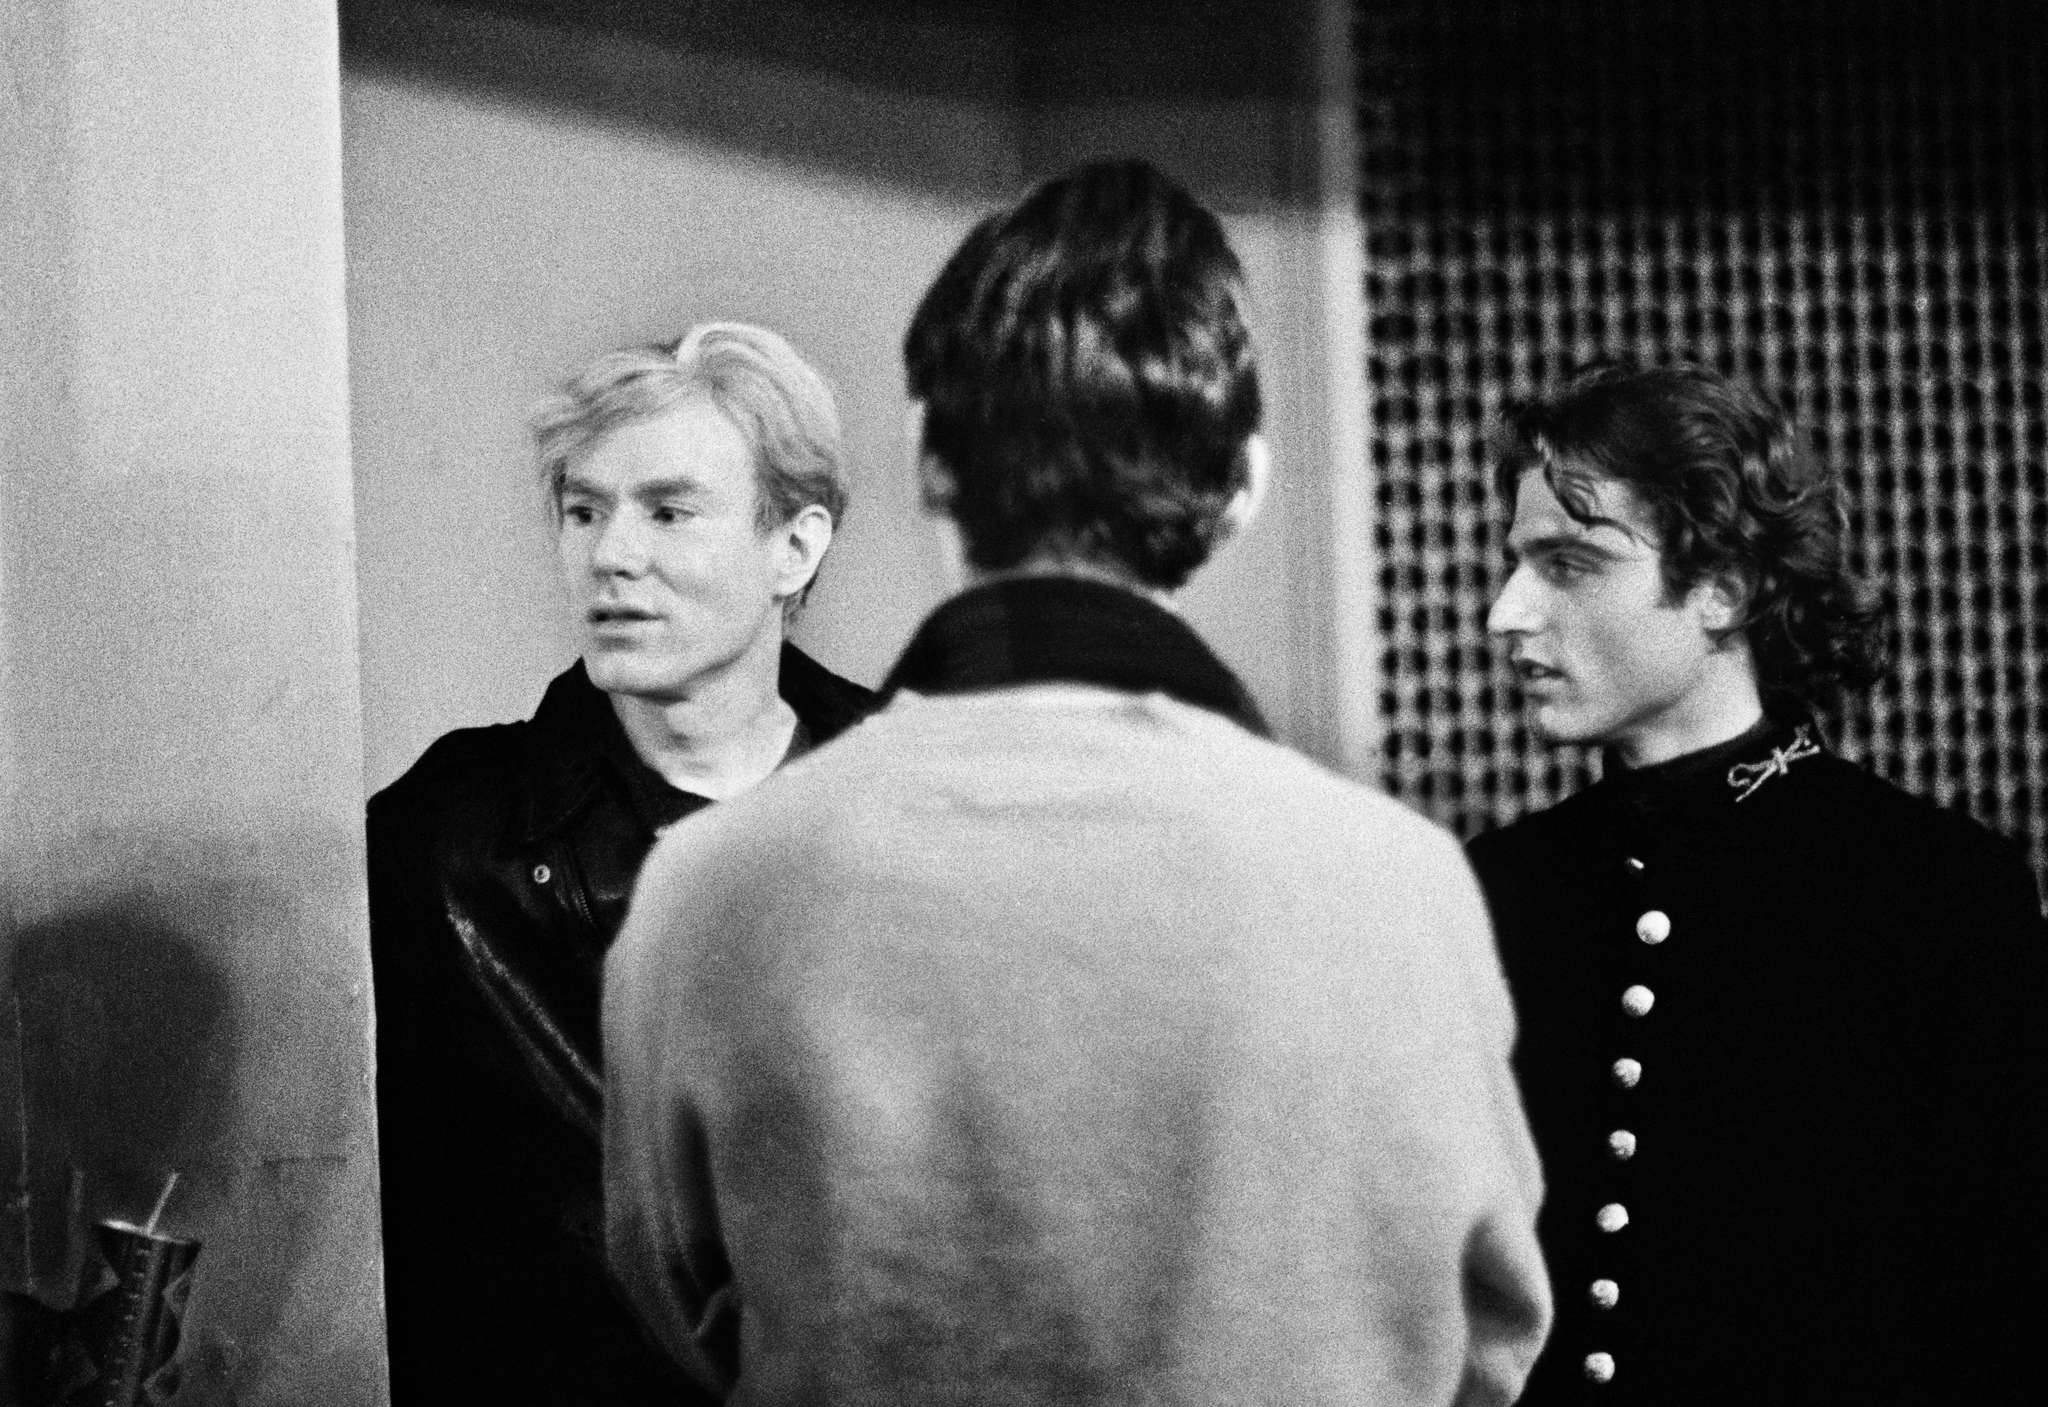 Andy Warhol and Gerard Malanga (right) at the Gershman Y in 1966.